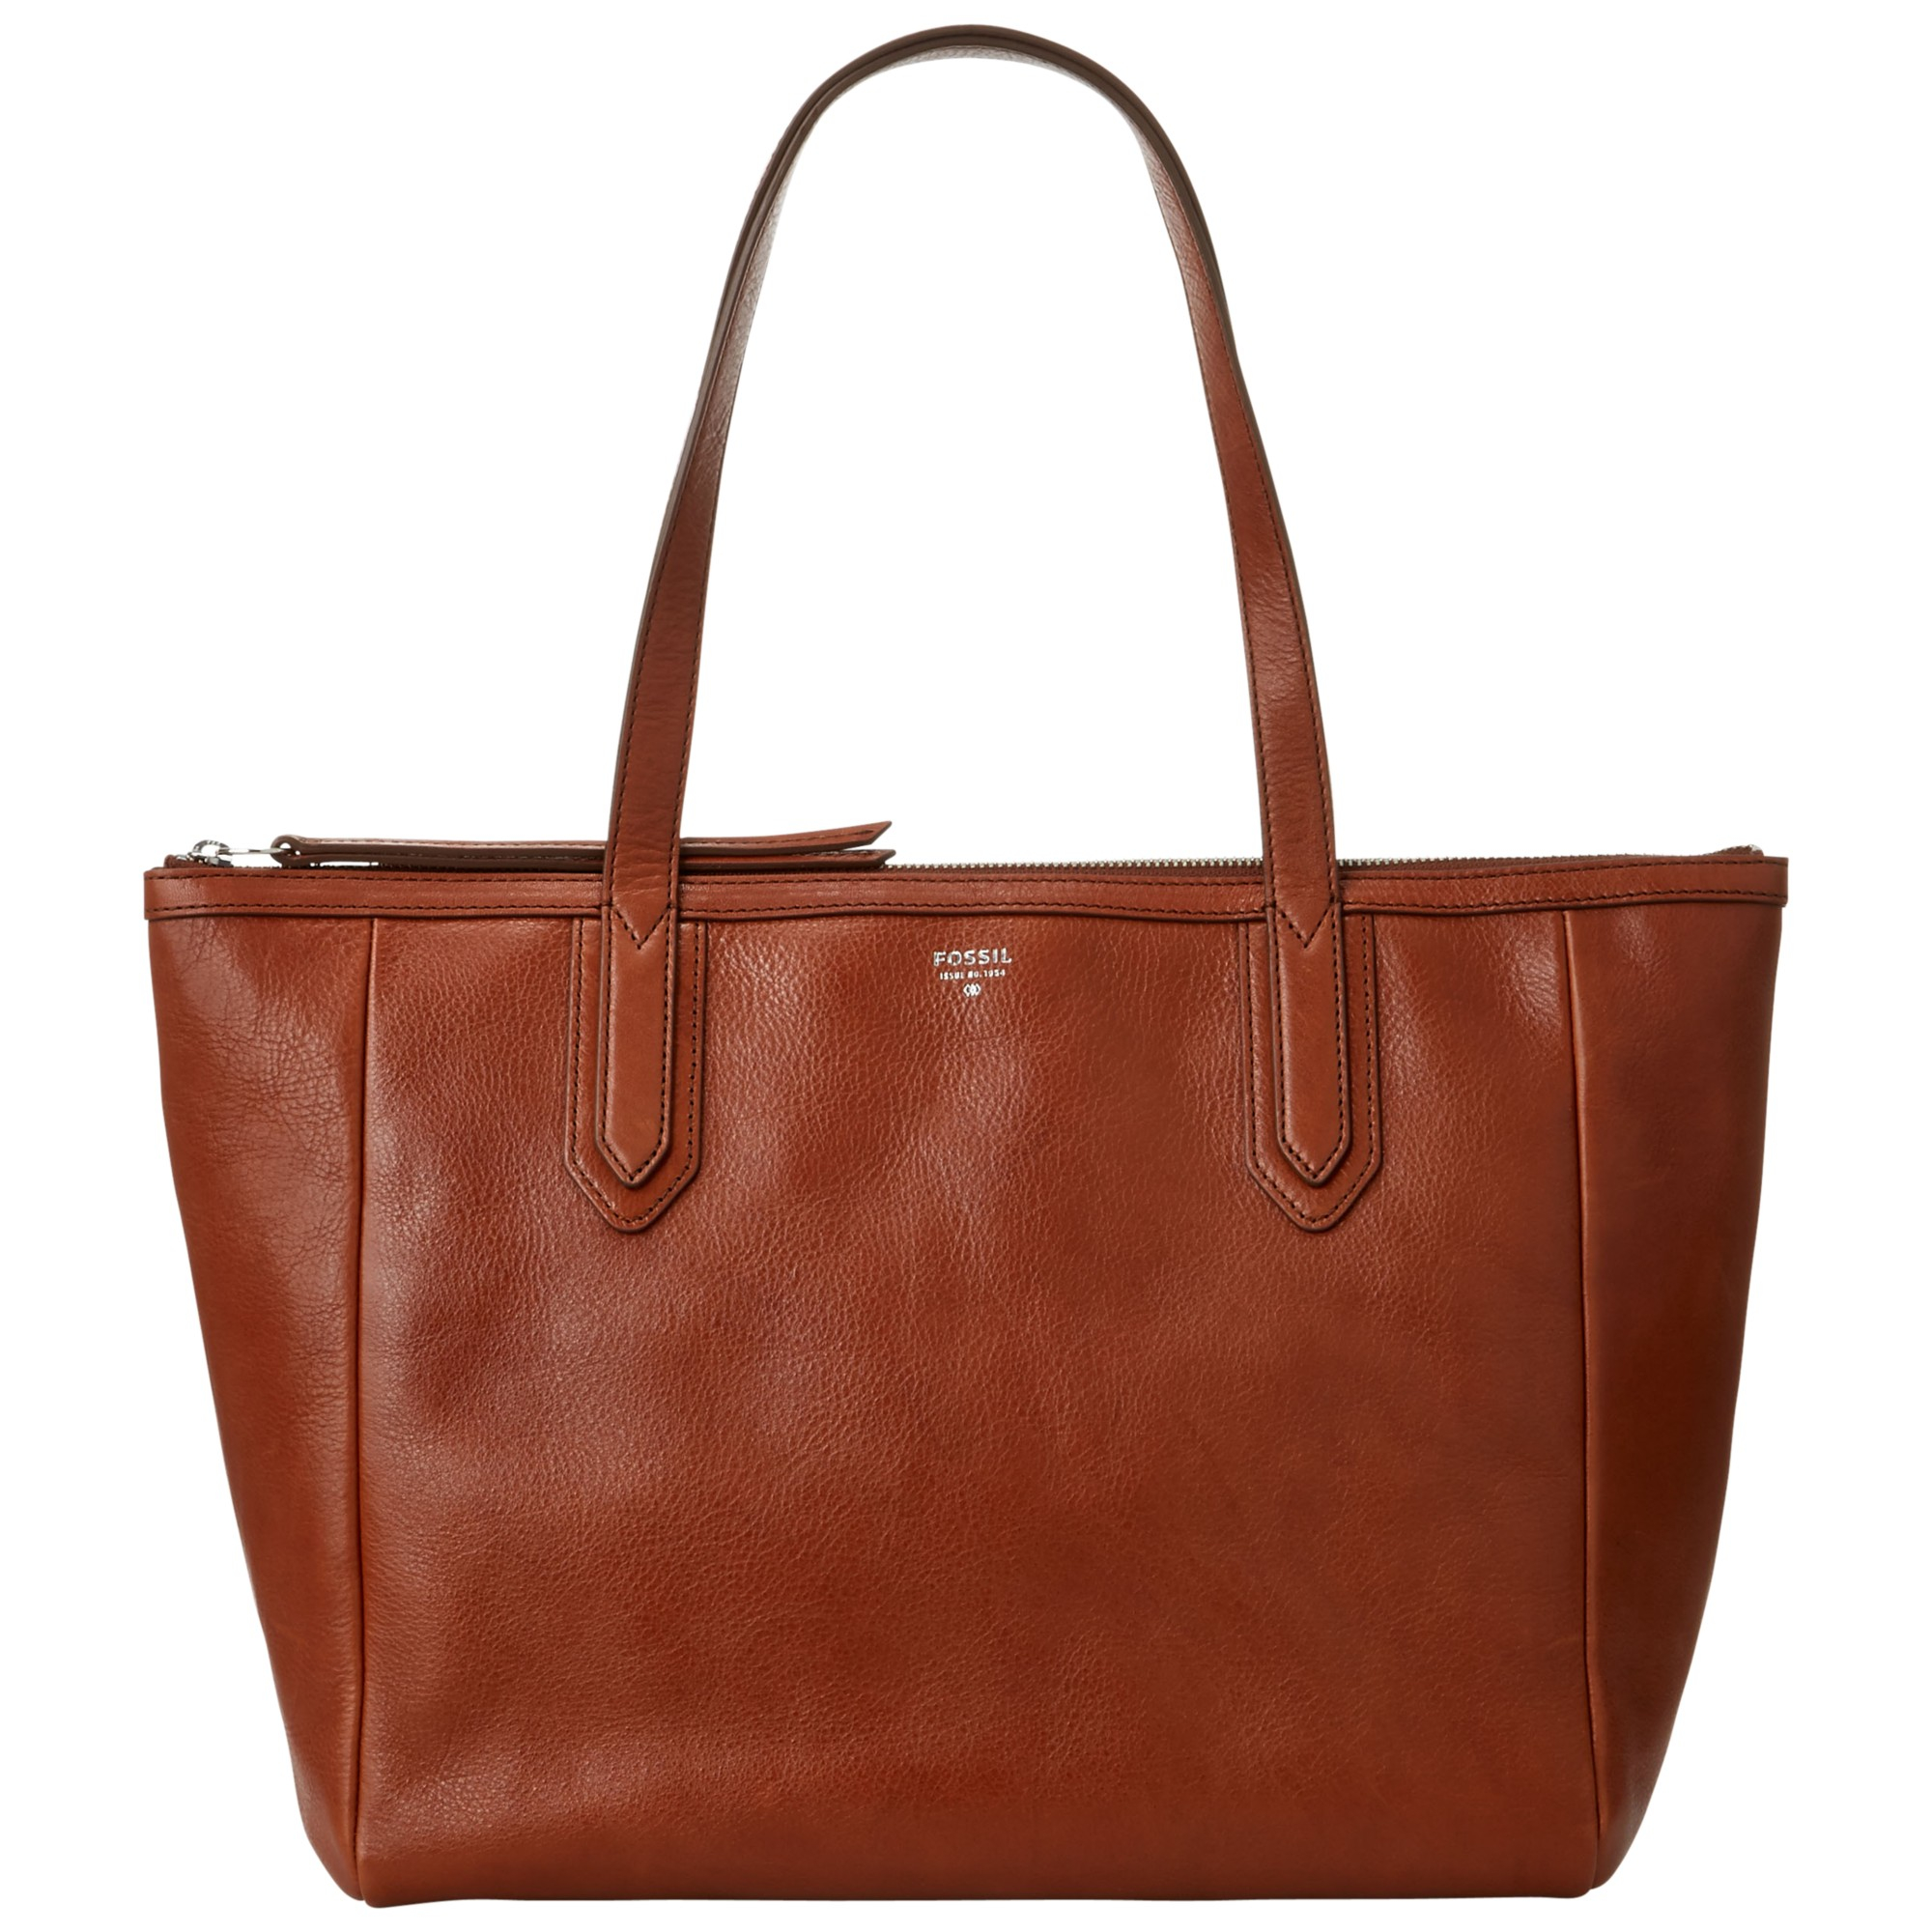 Fossil Sydney Leather Shopper Bag in Brown | Lyst